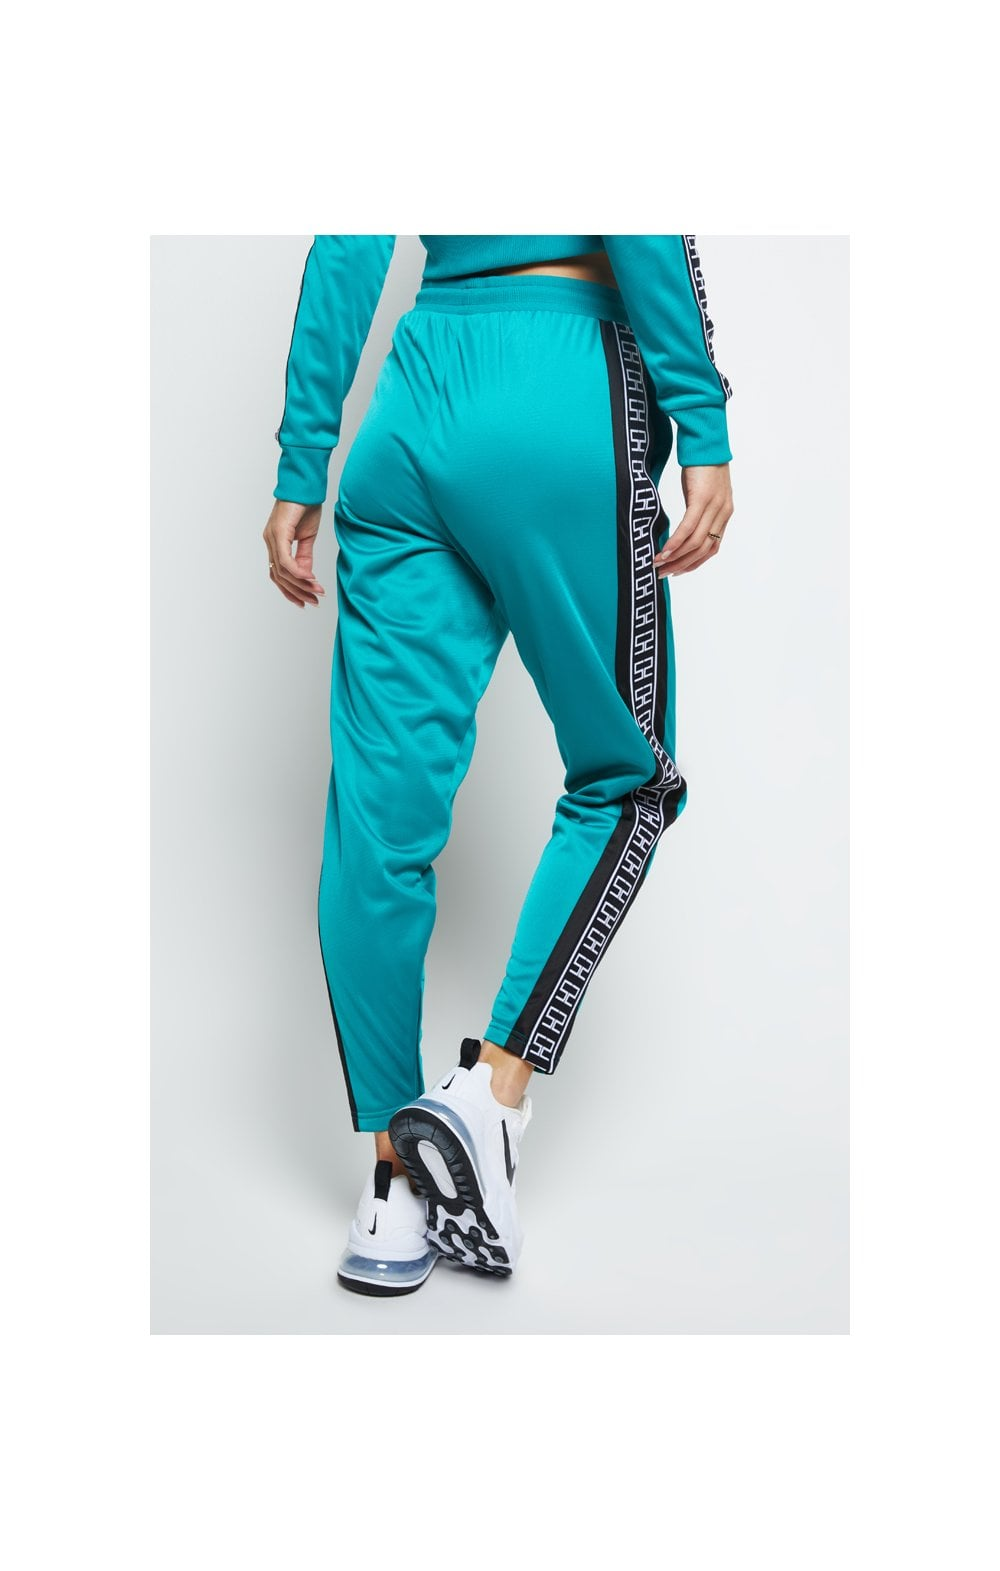 Load image into Gallery viewer, SikSilk Azure Track Pants - Teal (4)